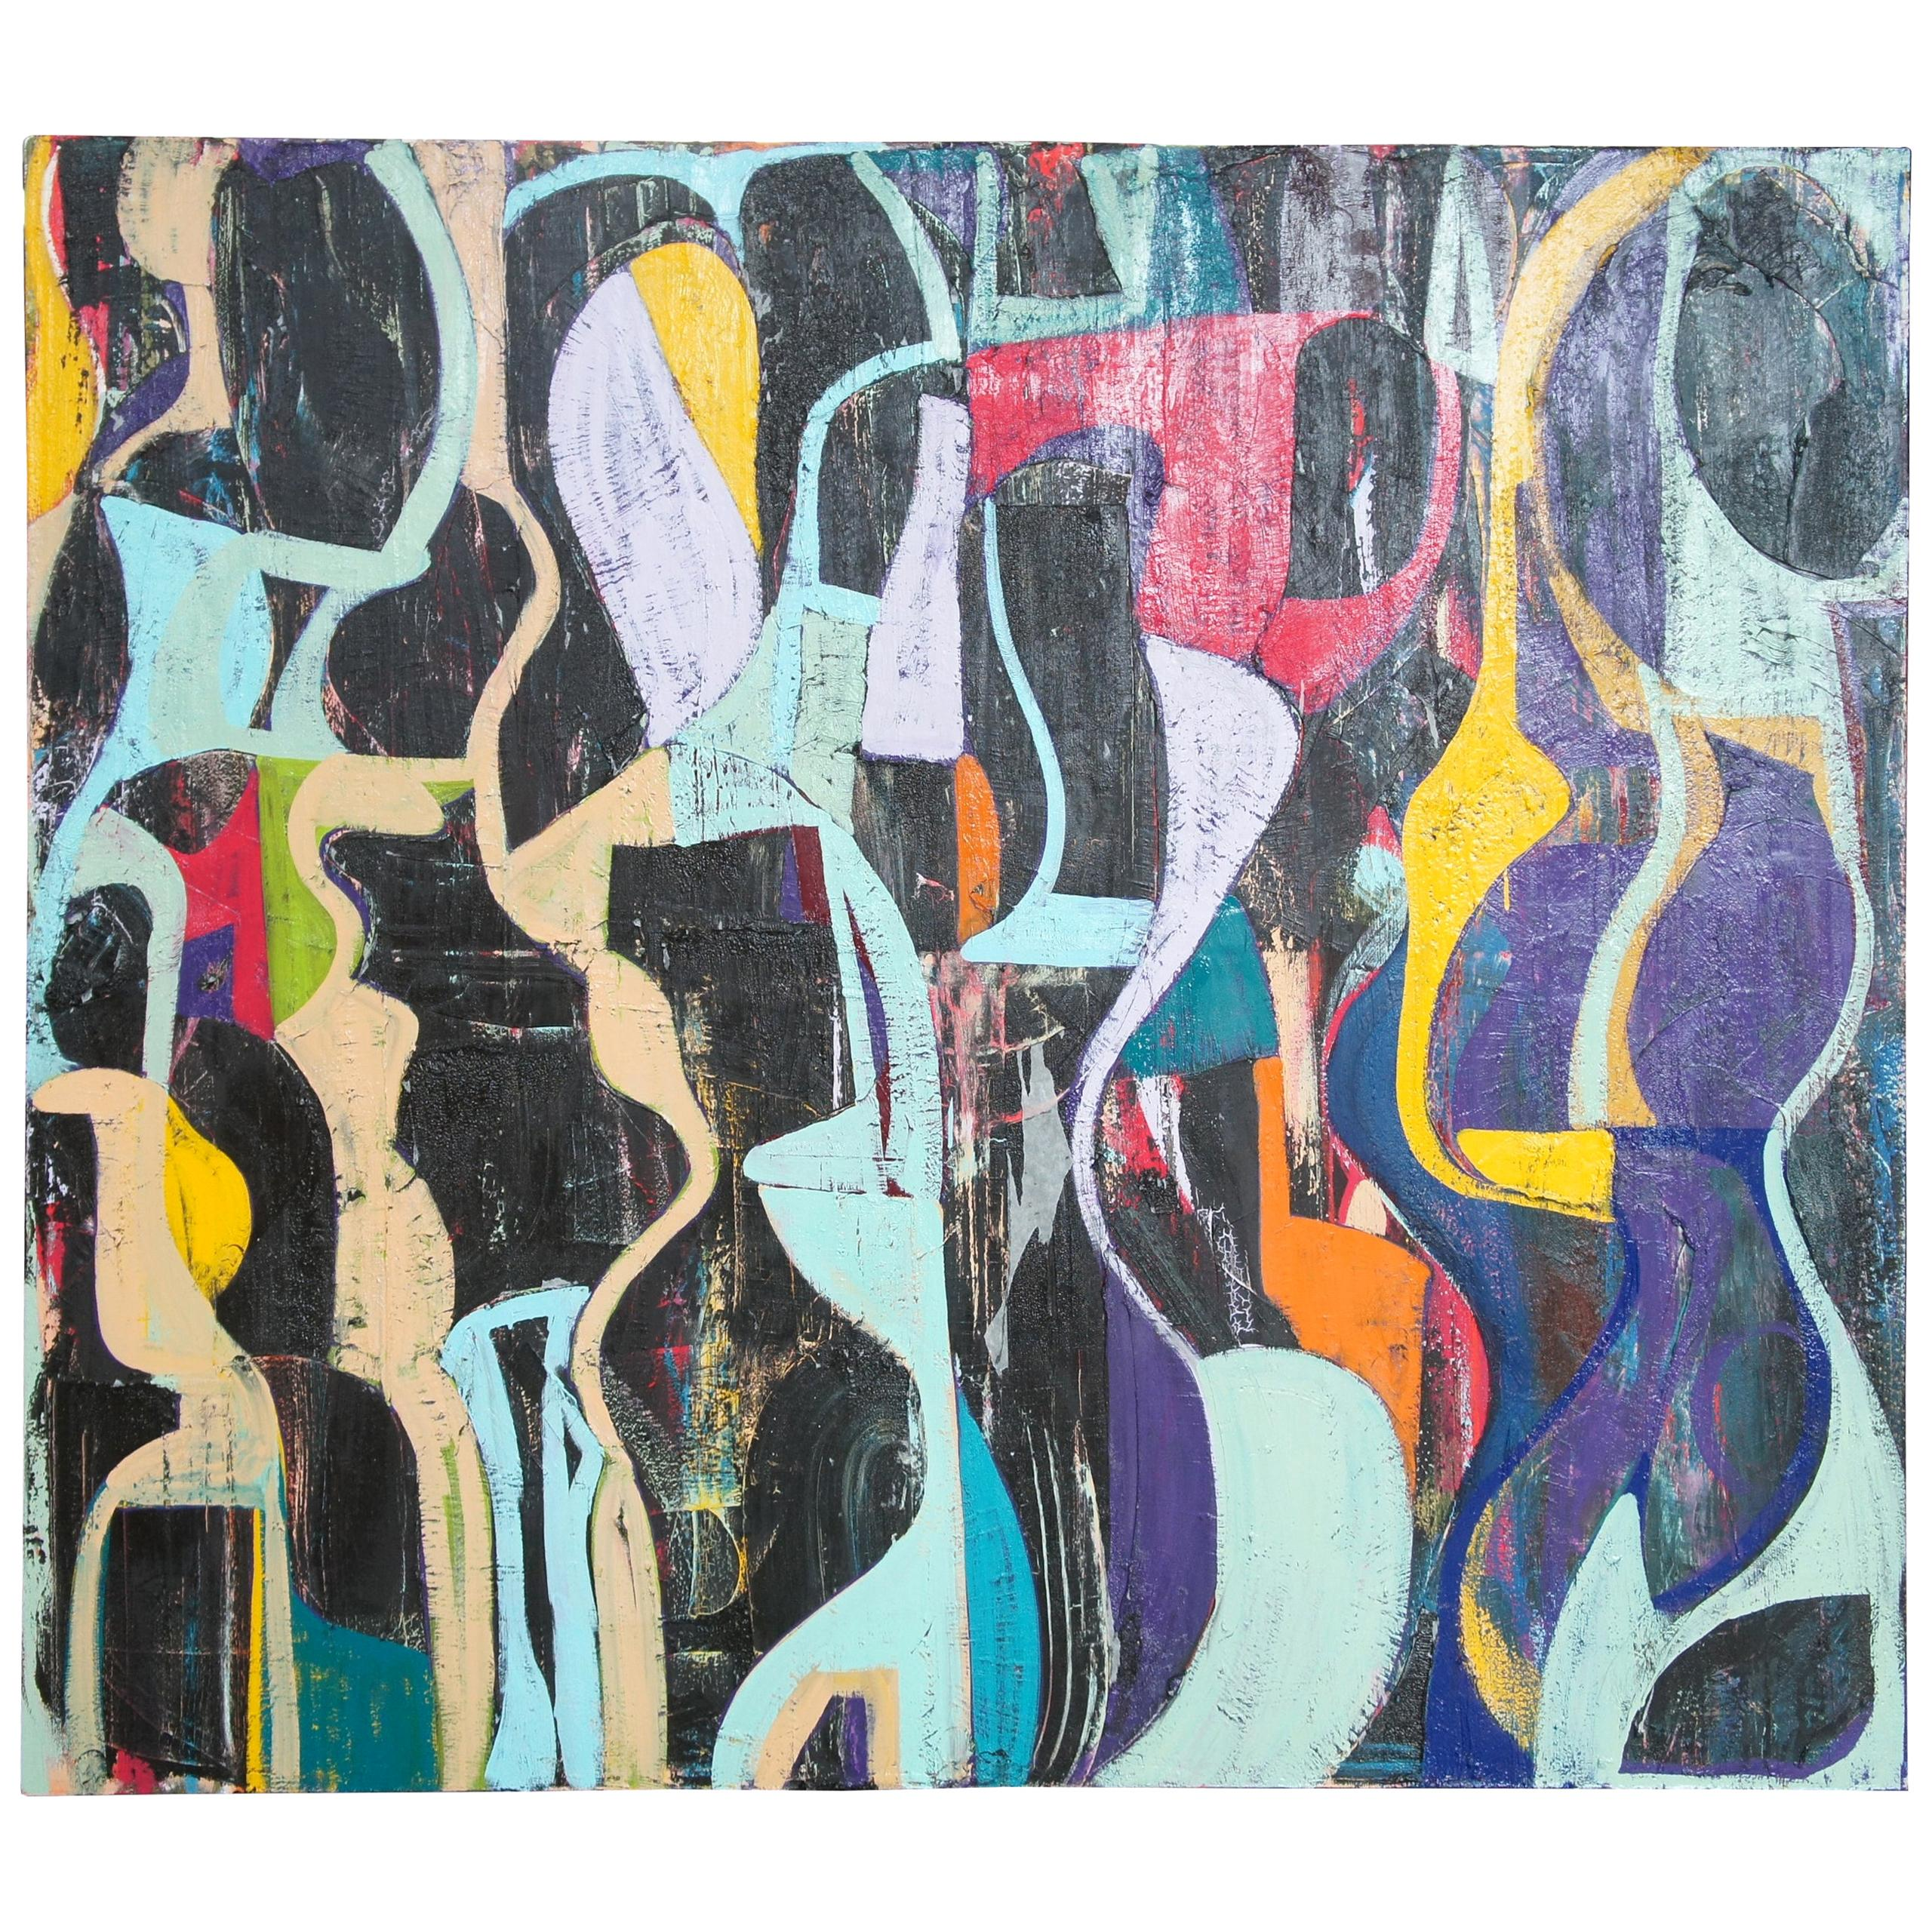 Jason Fascination Abstract Expressionist Acrylic Painting on Canvas